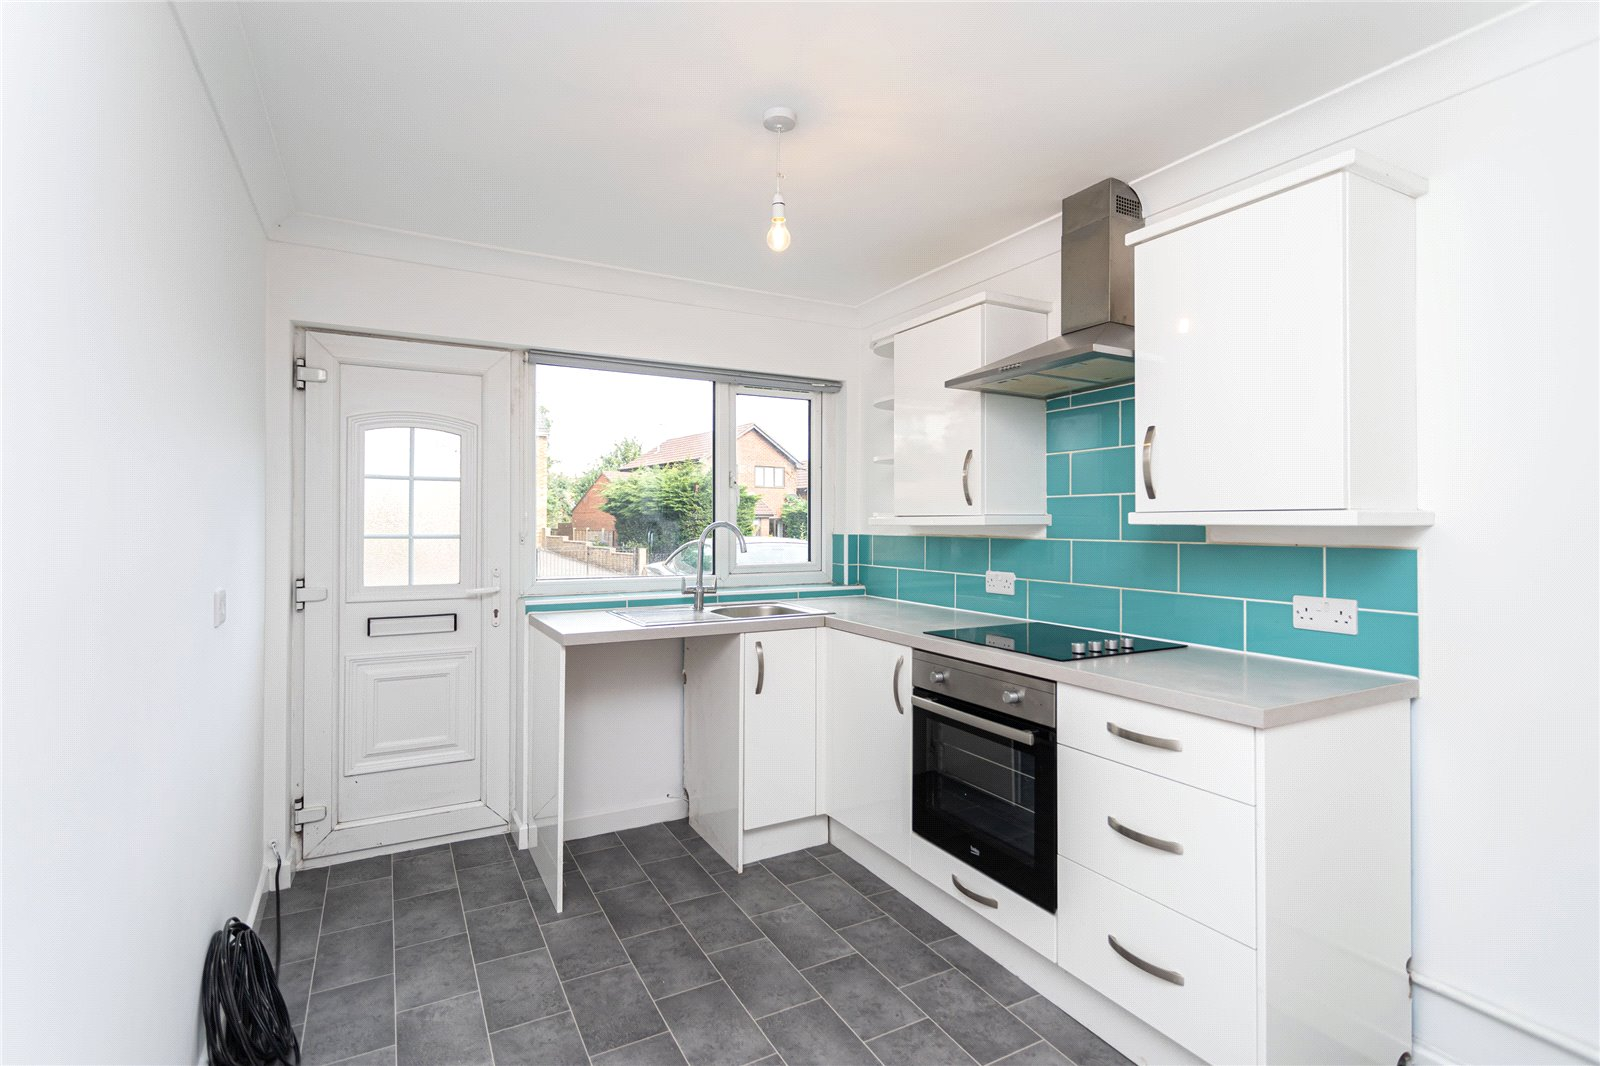 2 bed house for sale in Northmere Road, Poole, BH12